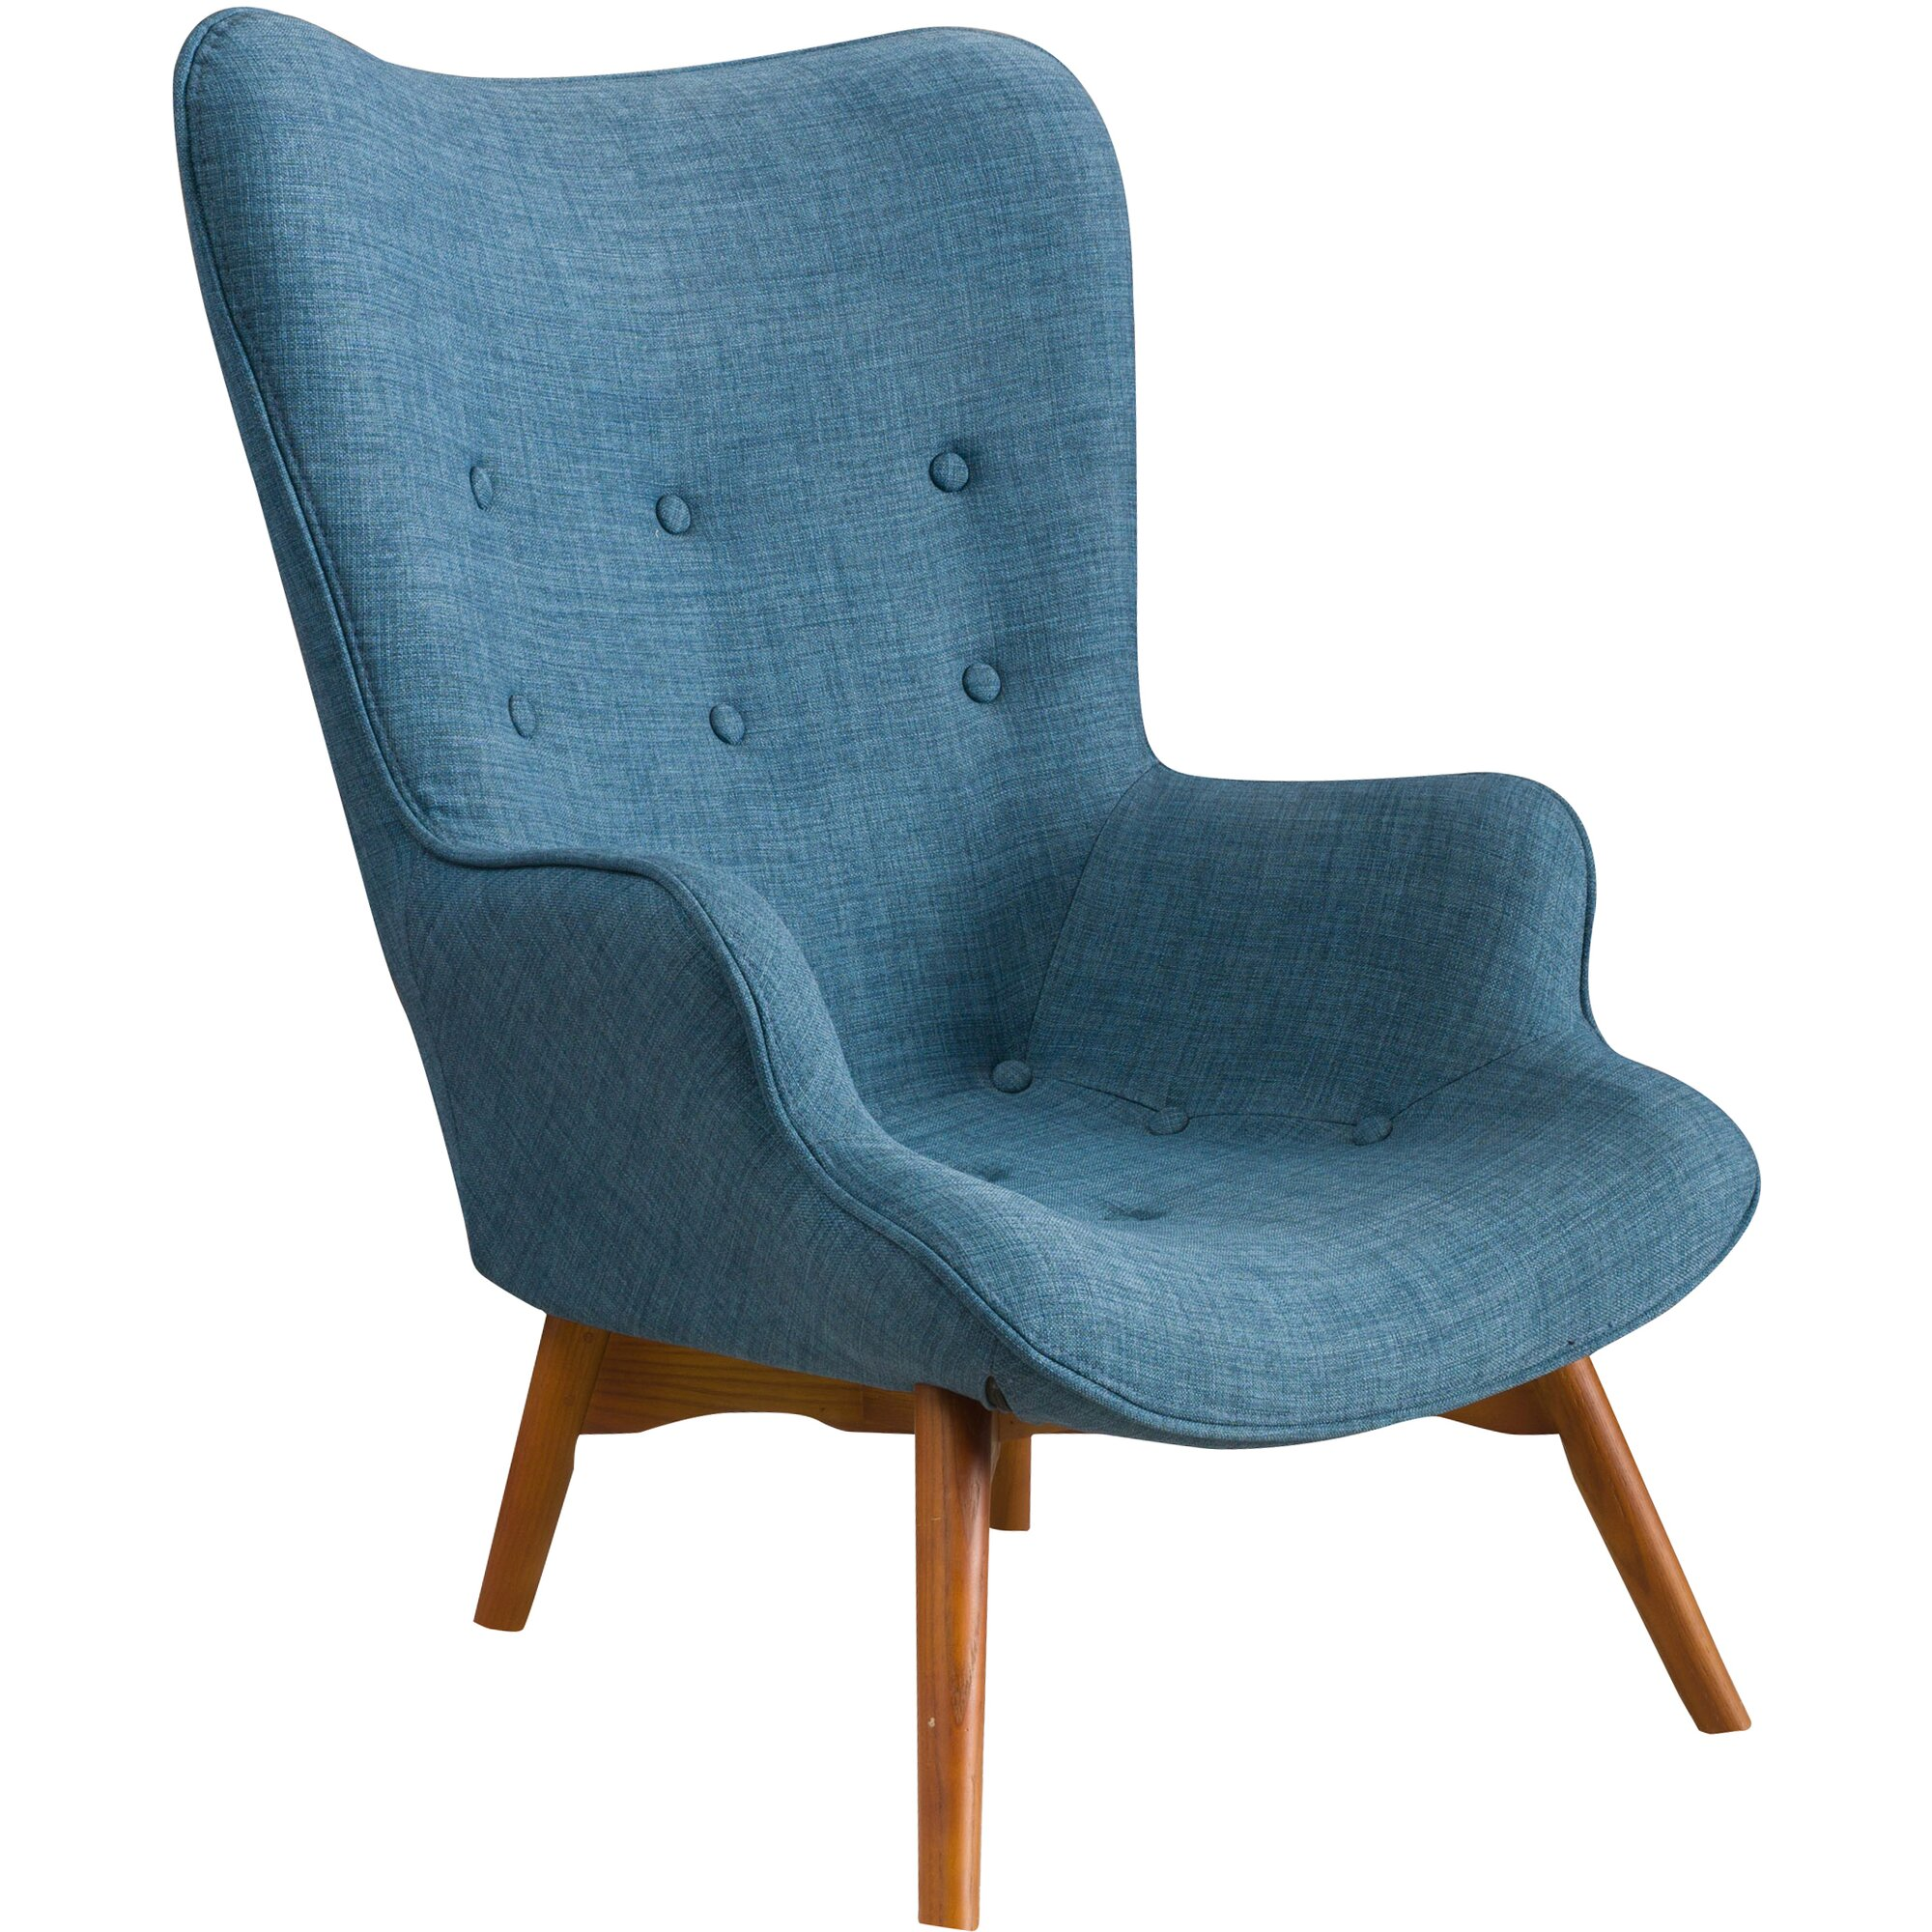 Teal wingback chair - Canyon Vista Mid Century Wingback Chair